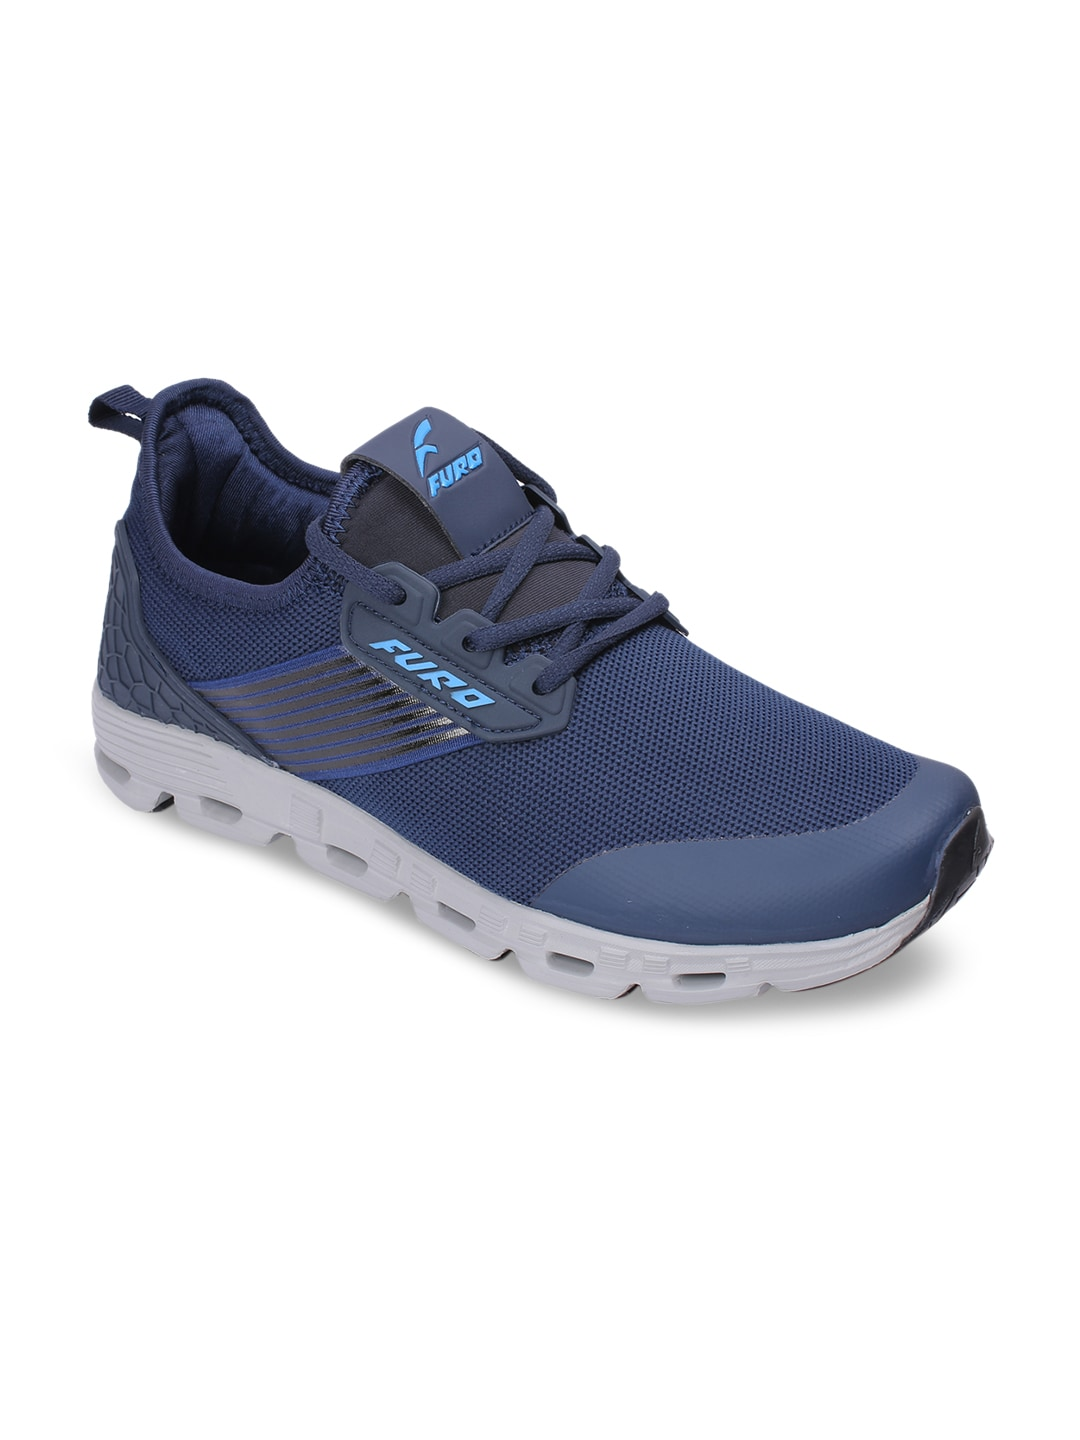 promo code c262a f02b7 Sports Shoes - Buy Sport Shoes For Men   Women Online   Myntra